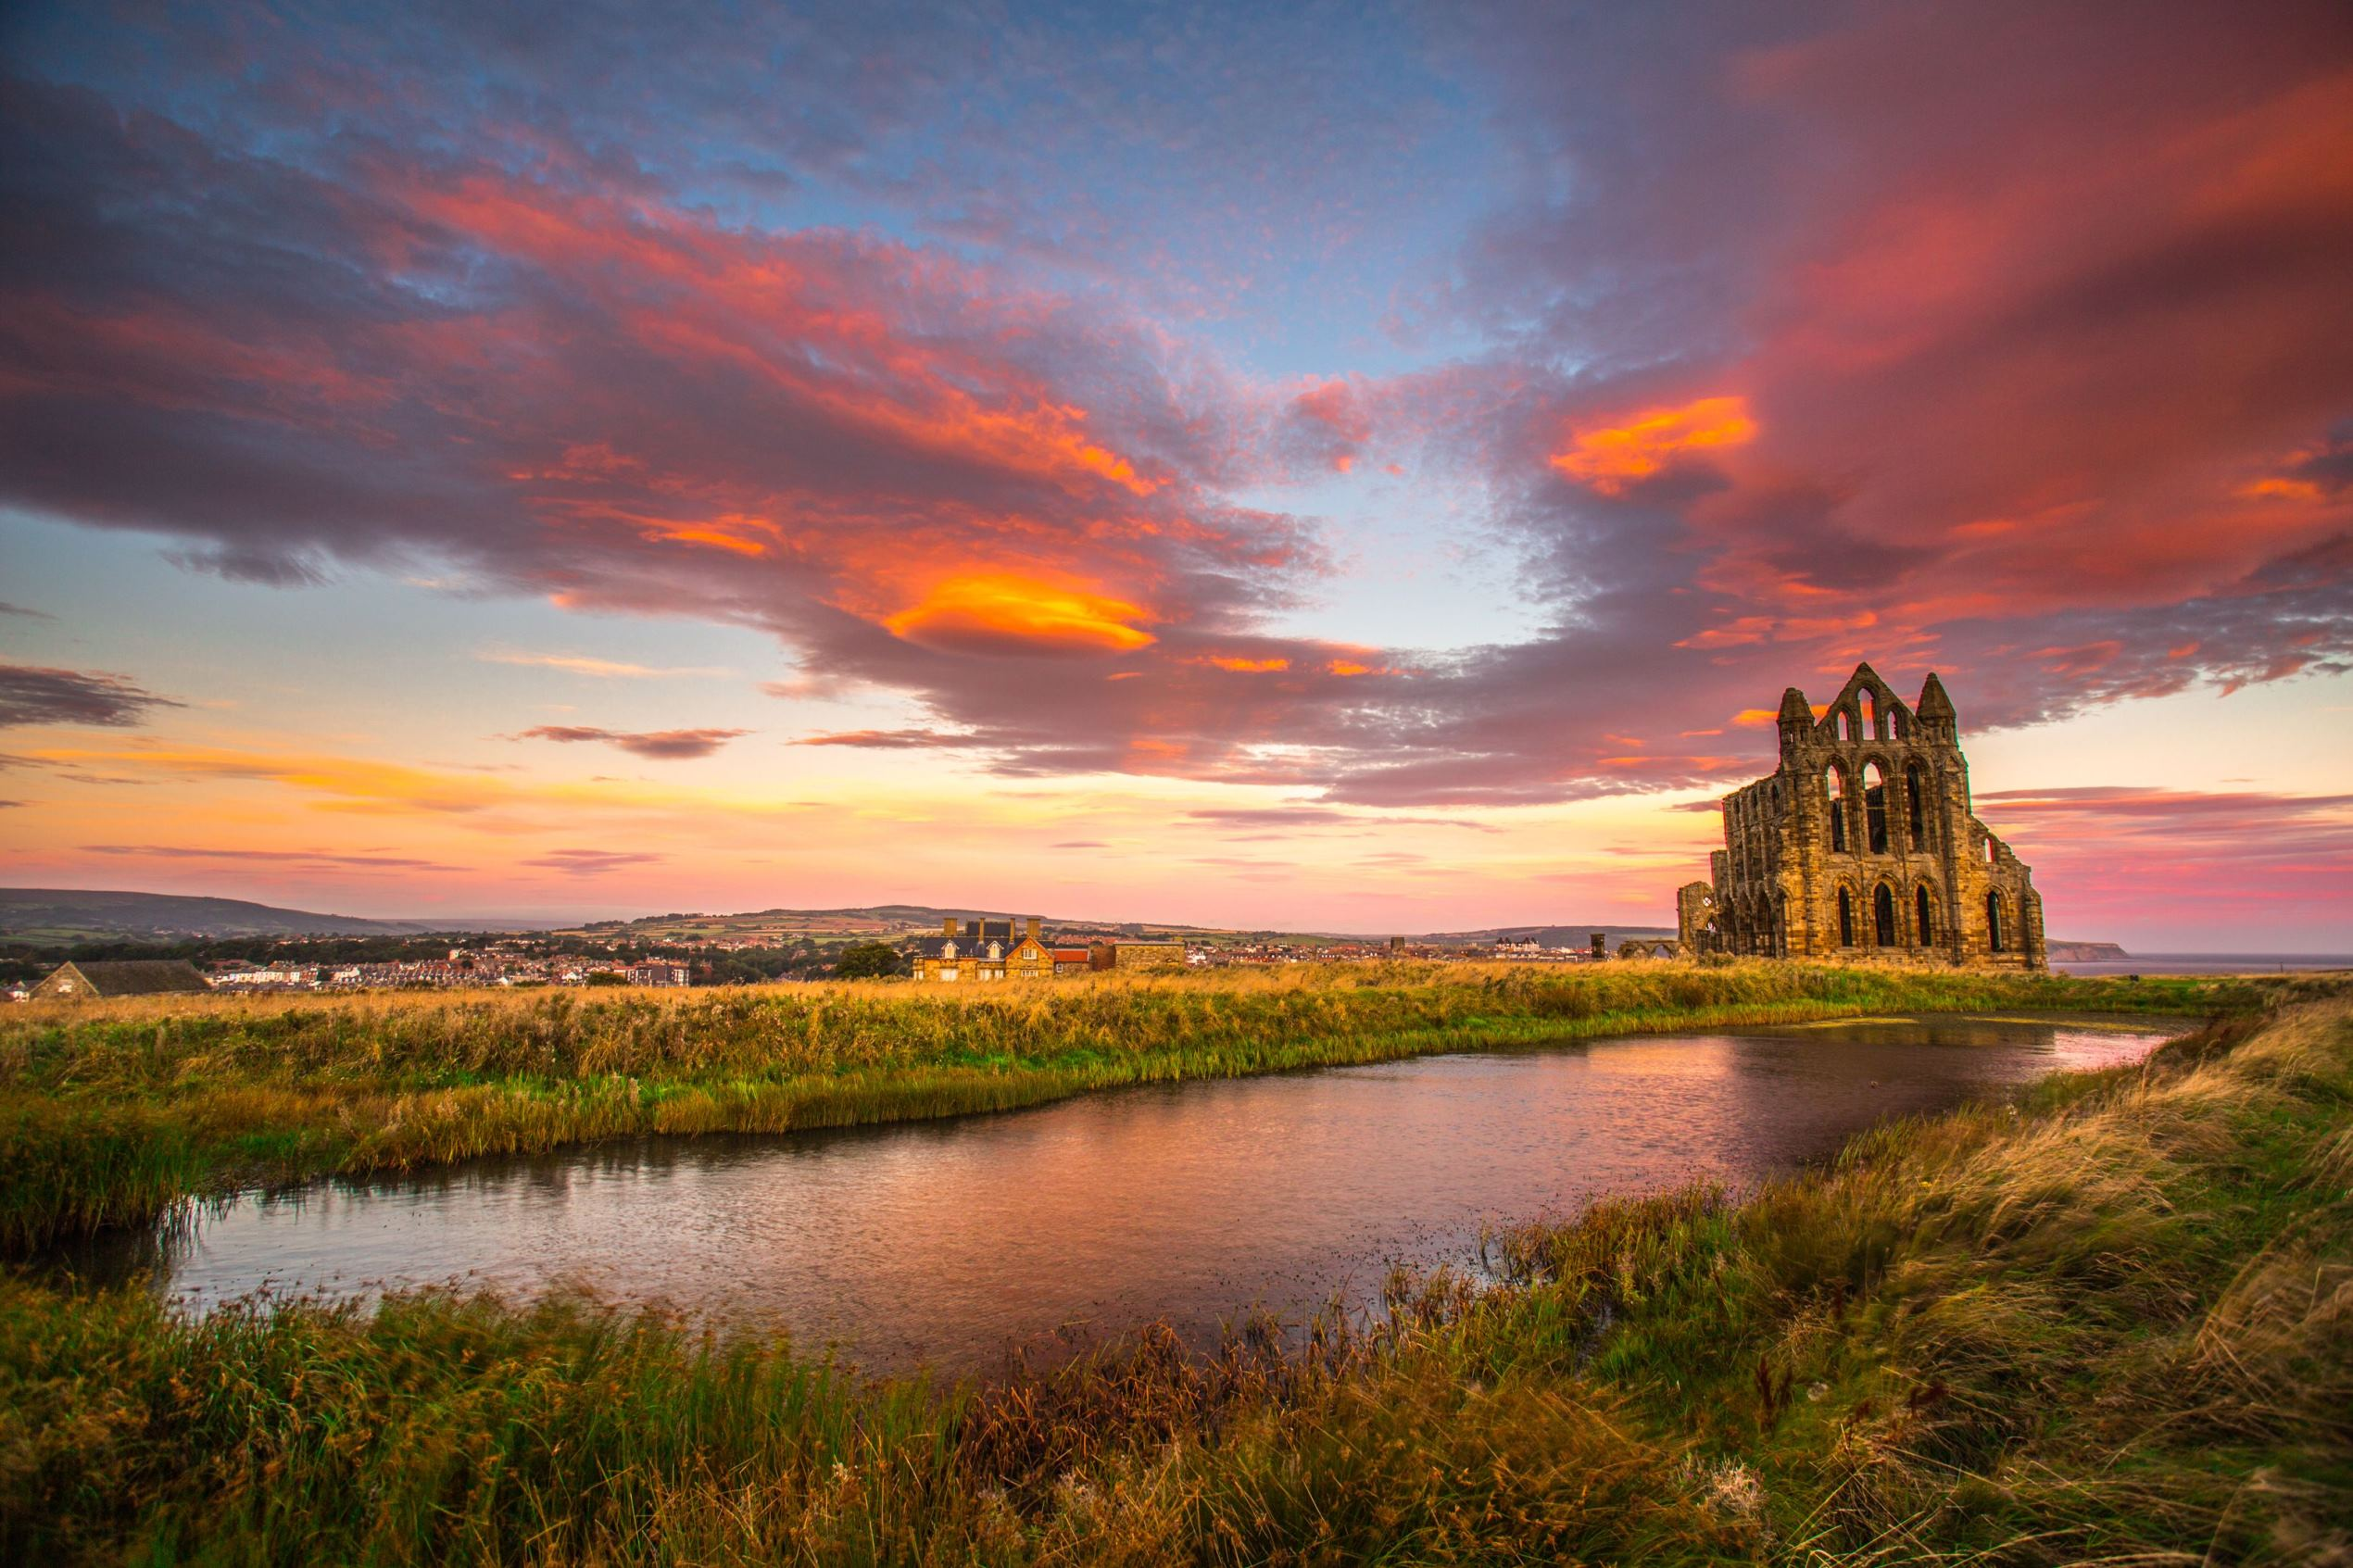 Слайд 81 из 86: Sunrise over Whitby Abbey, Yorkshire, UK - 12 Sep 2016 Sunrise over Whitby Abbey